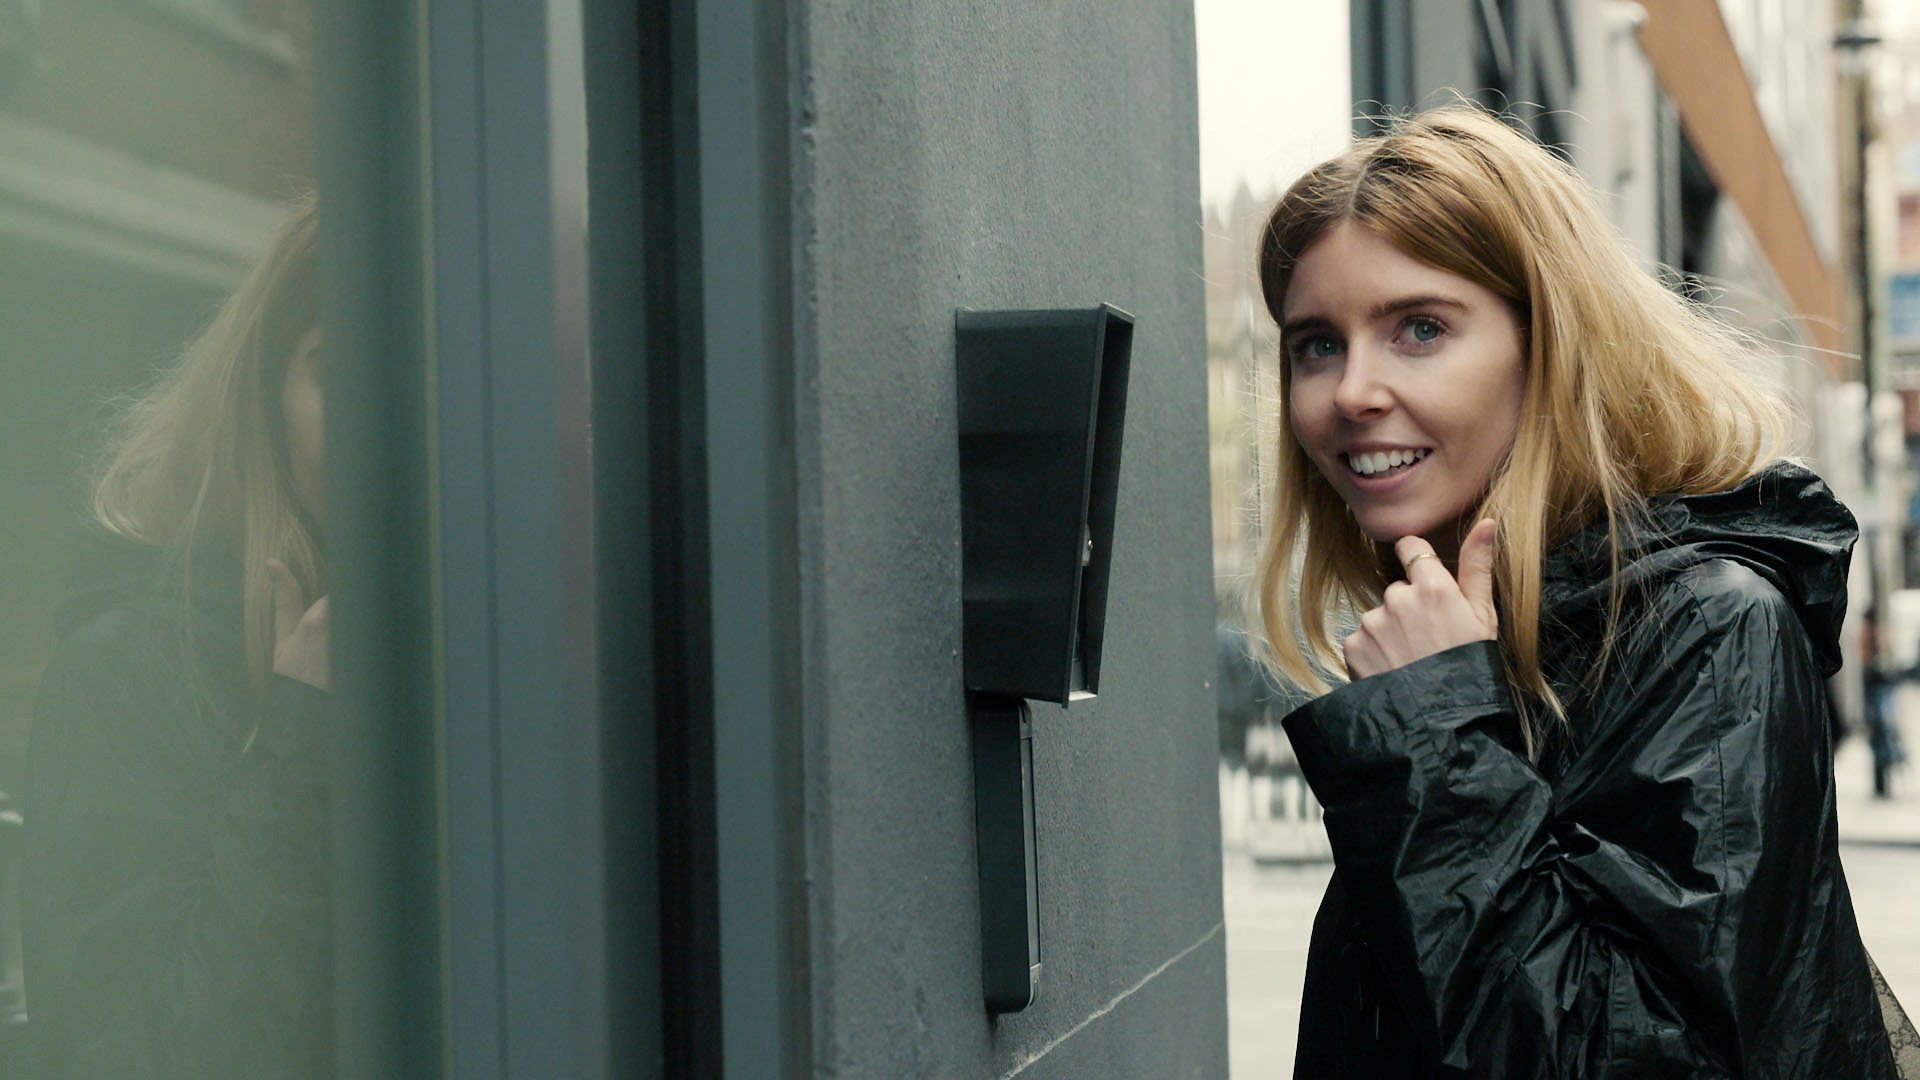 Stacey Dooley Investigates — s07 special-5 — Kids Selling Drugs Online